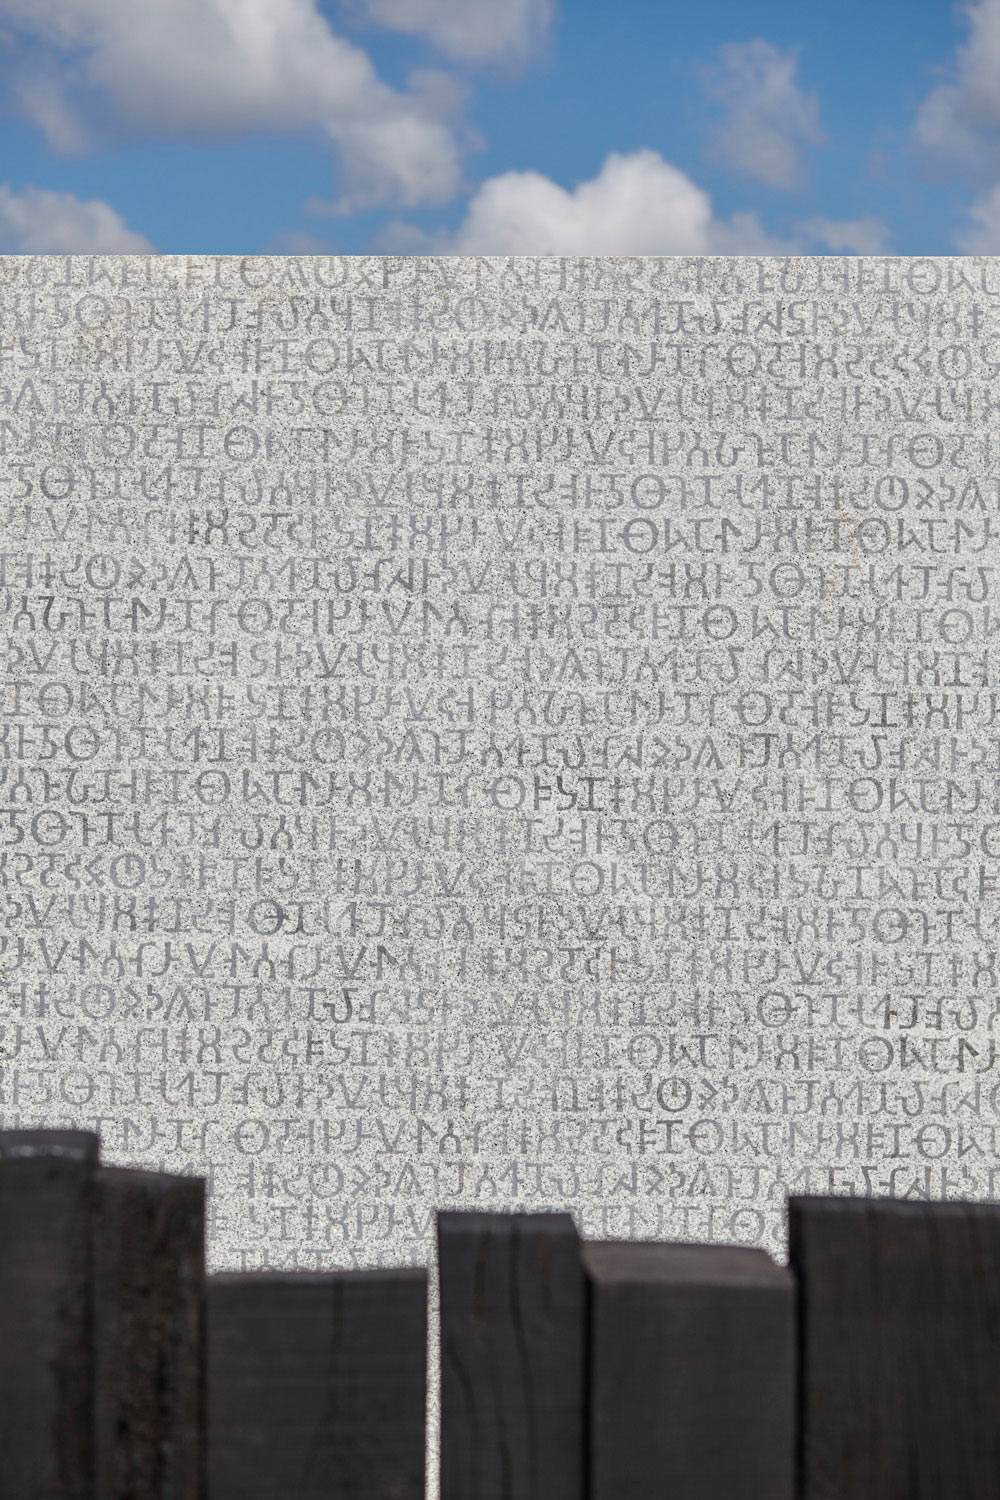 text scribed on white granite and marble by airey spaces